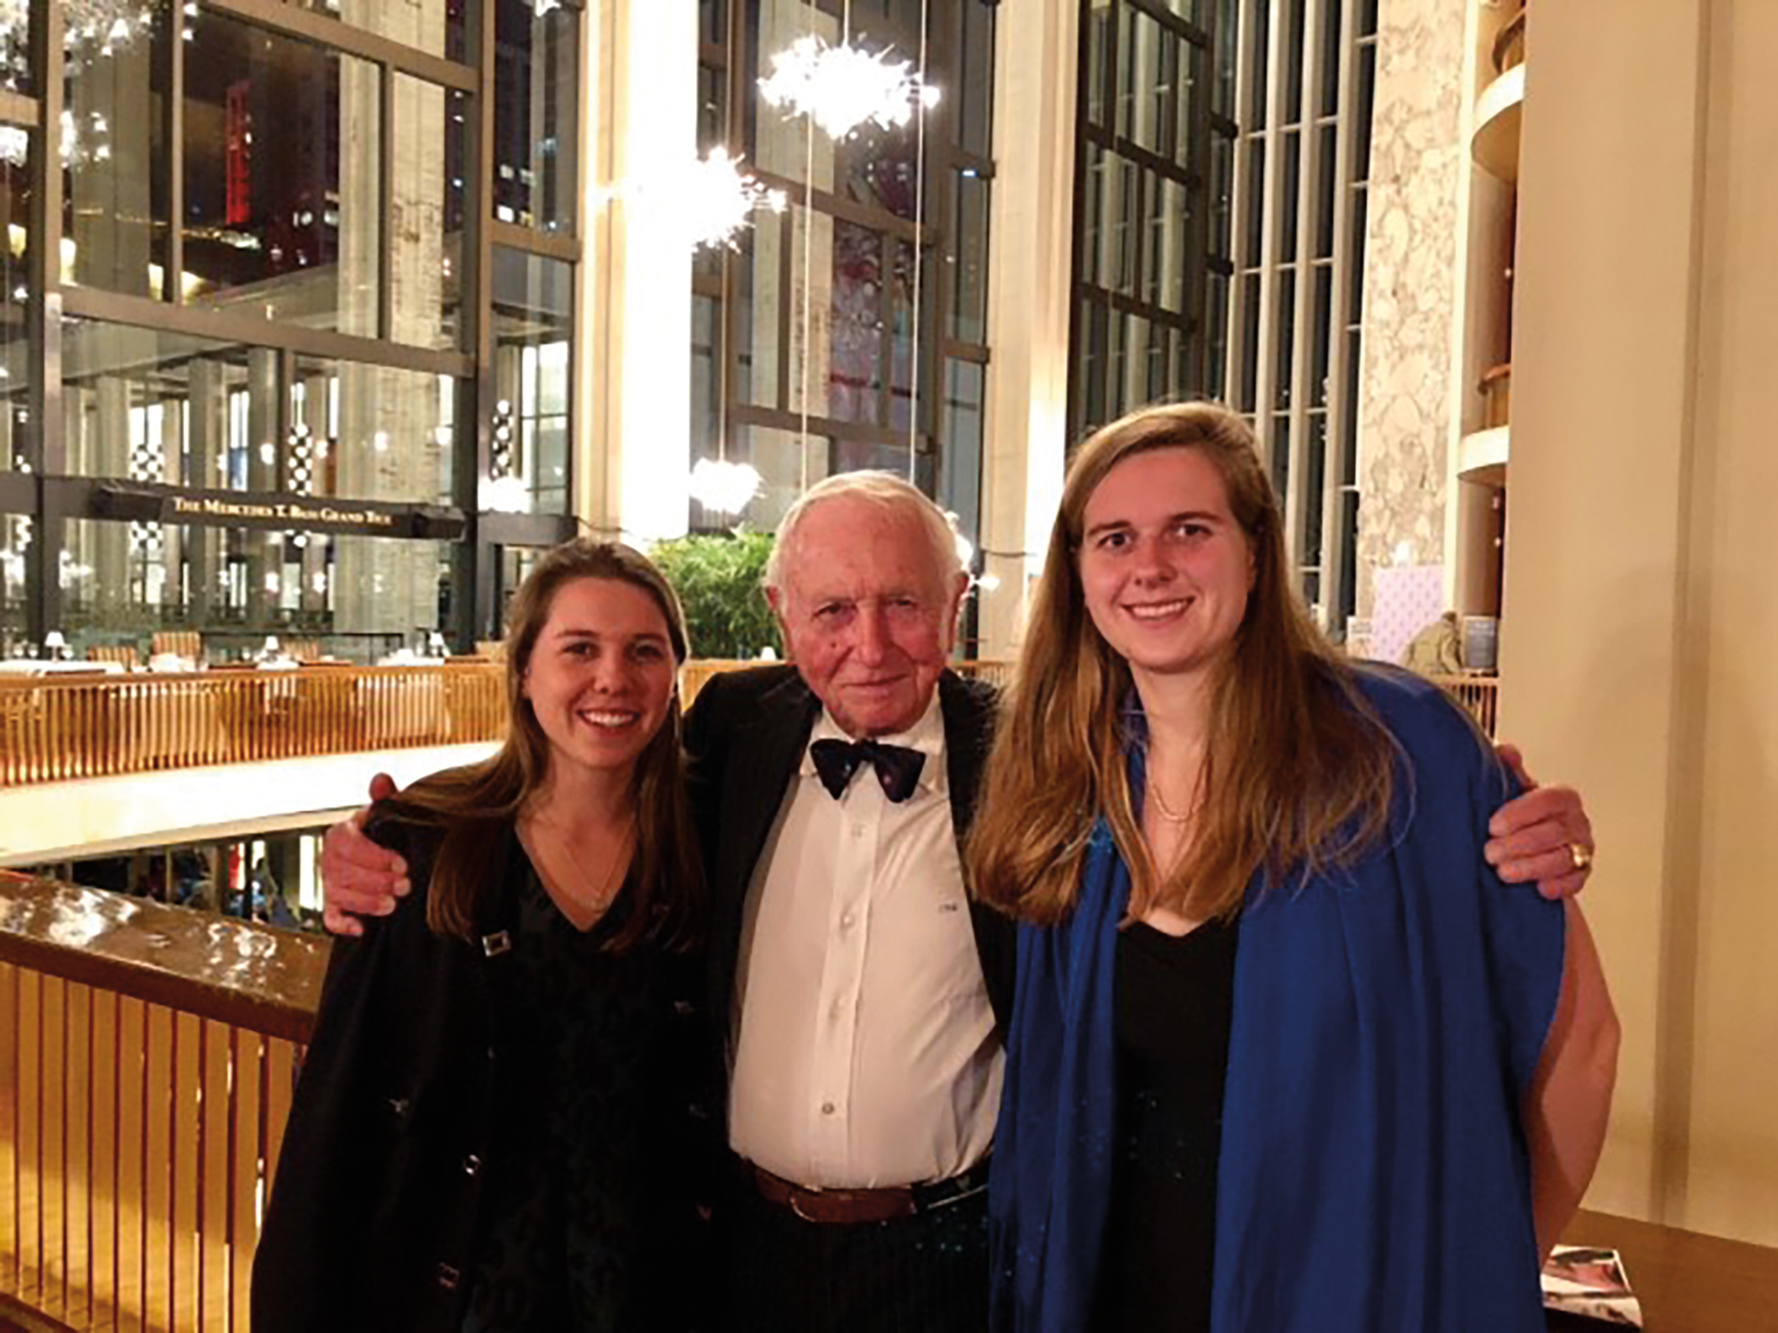 Jim Kinnear '46 celebrated Grand-daddy's night at the Met Opera with granddaughters Stacy Neul '15 (l.) and Stephanie Neul '11 (r.).